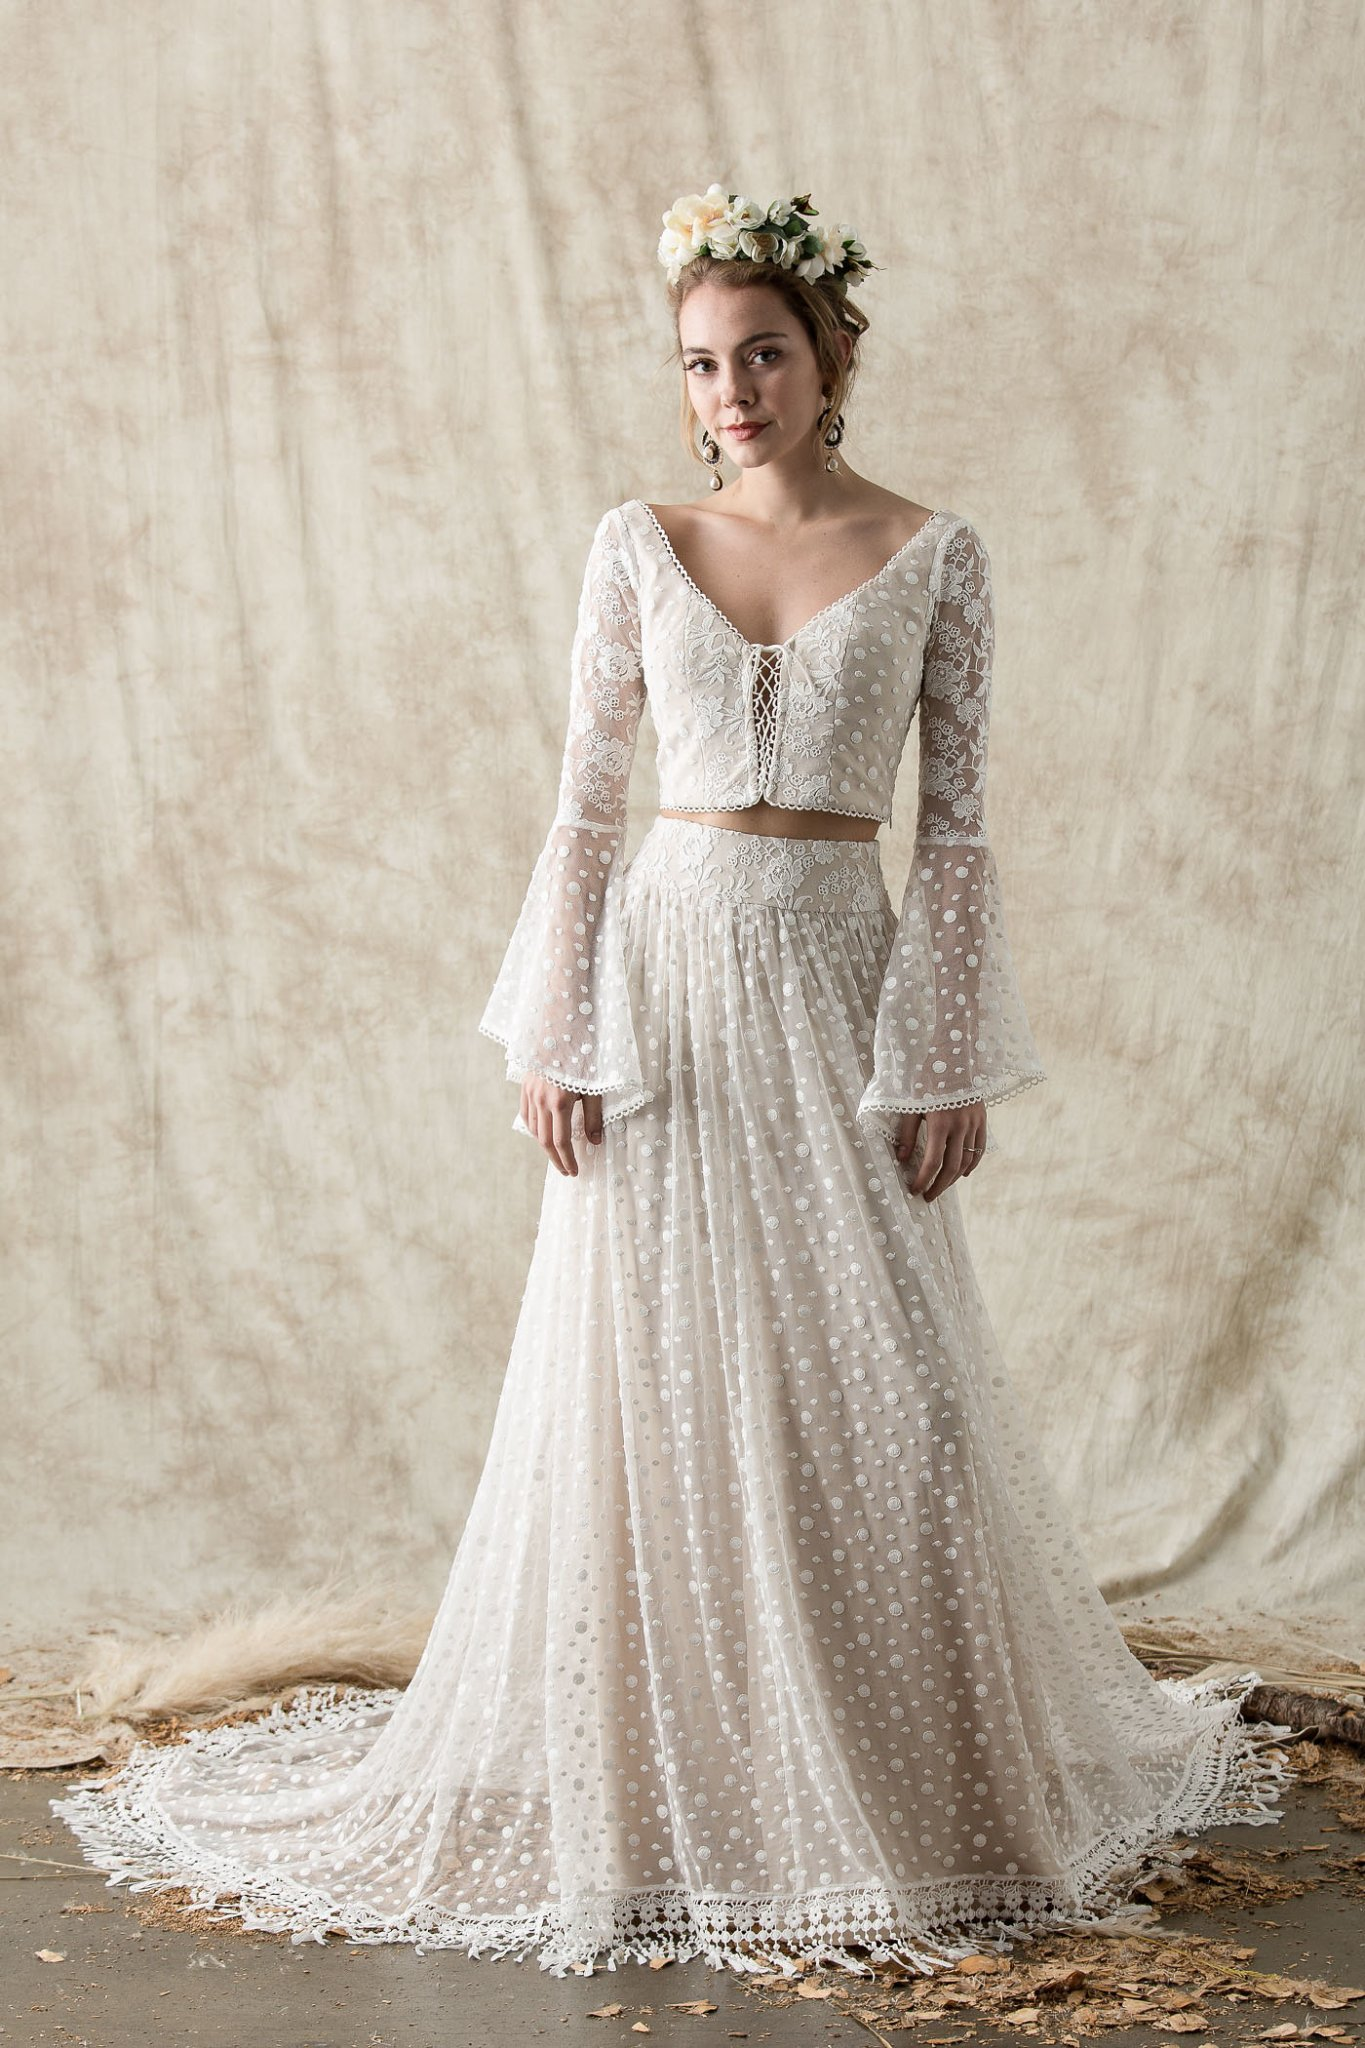 Ophelia Two Piece Wedding Dress | Dreamers and Lovers